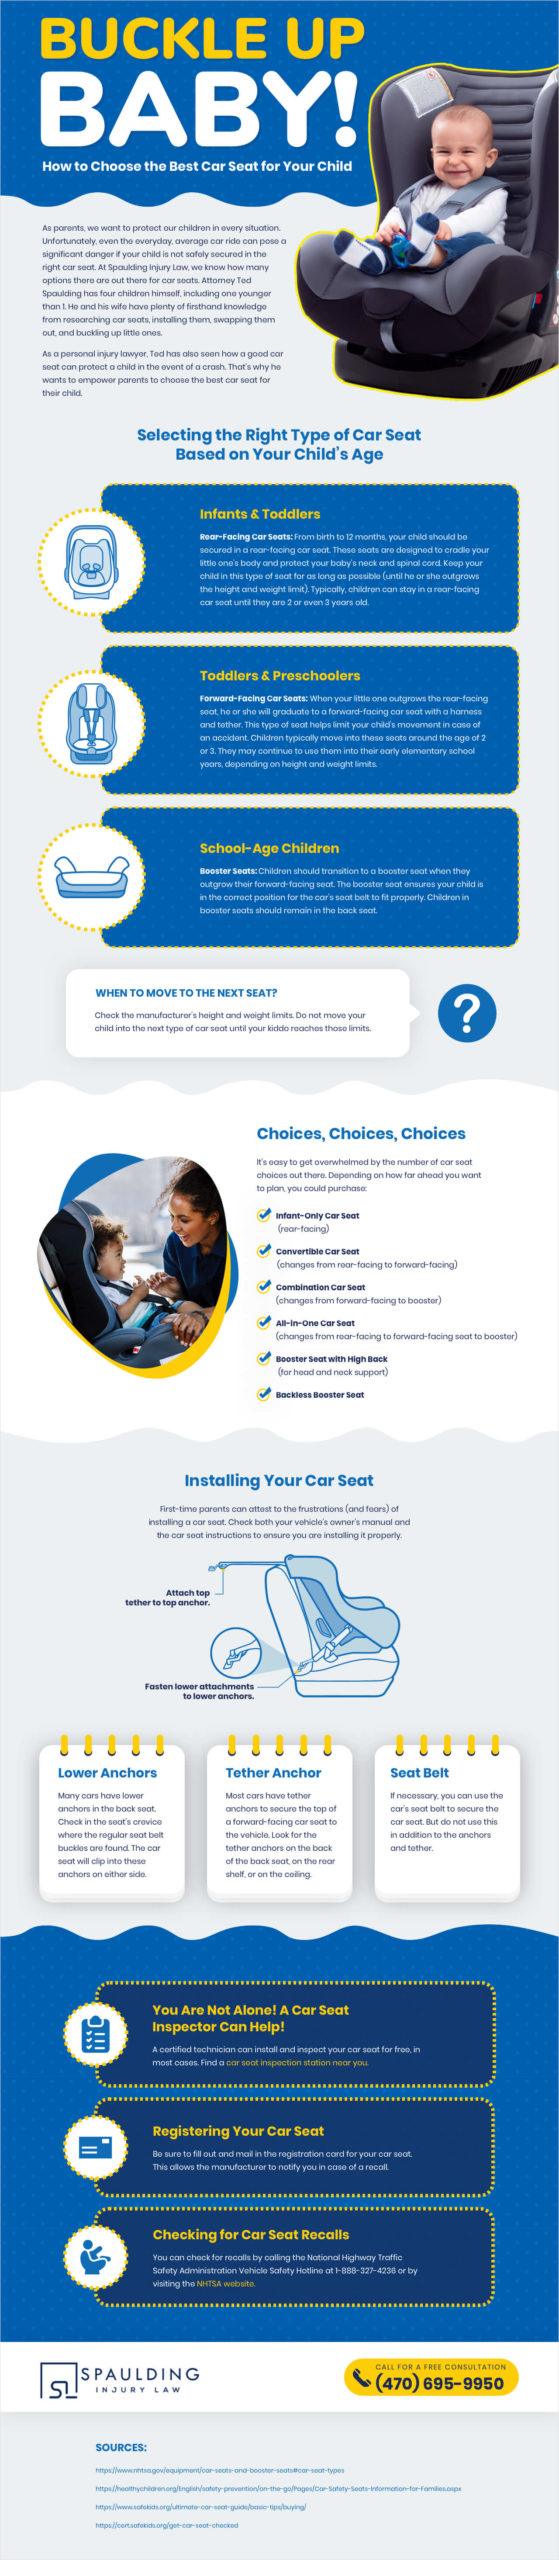 Buckle Up Baby infographic courtesy of author.